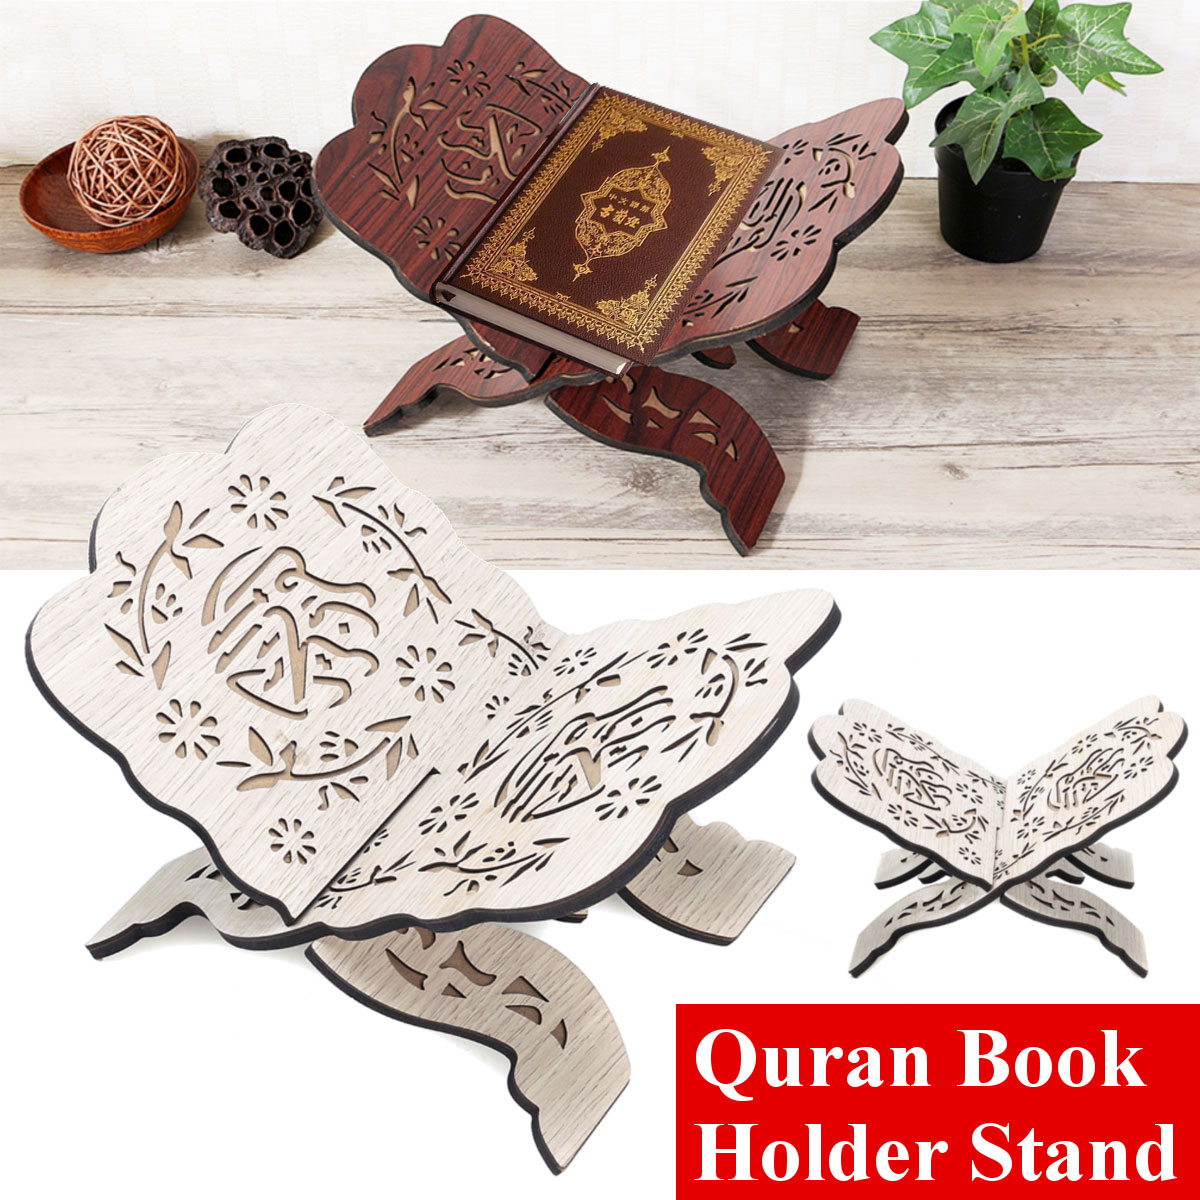 28x20x15cm Wooden Book Stand Holder Quran Muslim Ramadan Allah Islamic Gift Bookends Removable Handmade Wood Book Decoration Bookends